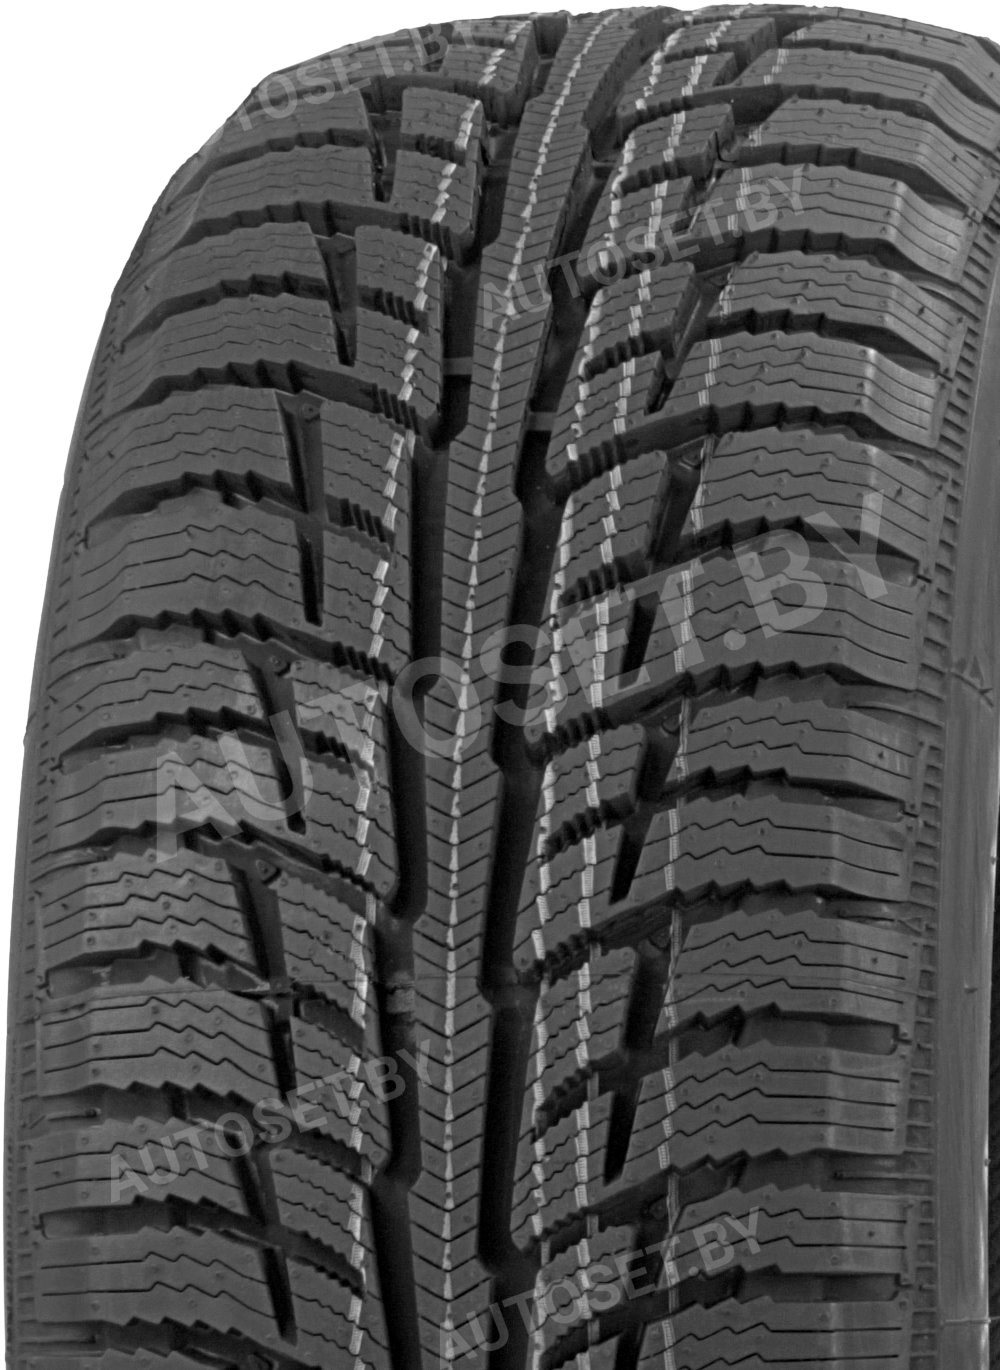 Зимняя шина BFGOODRICH Winter T/A KSI – вид 1